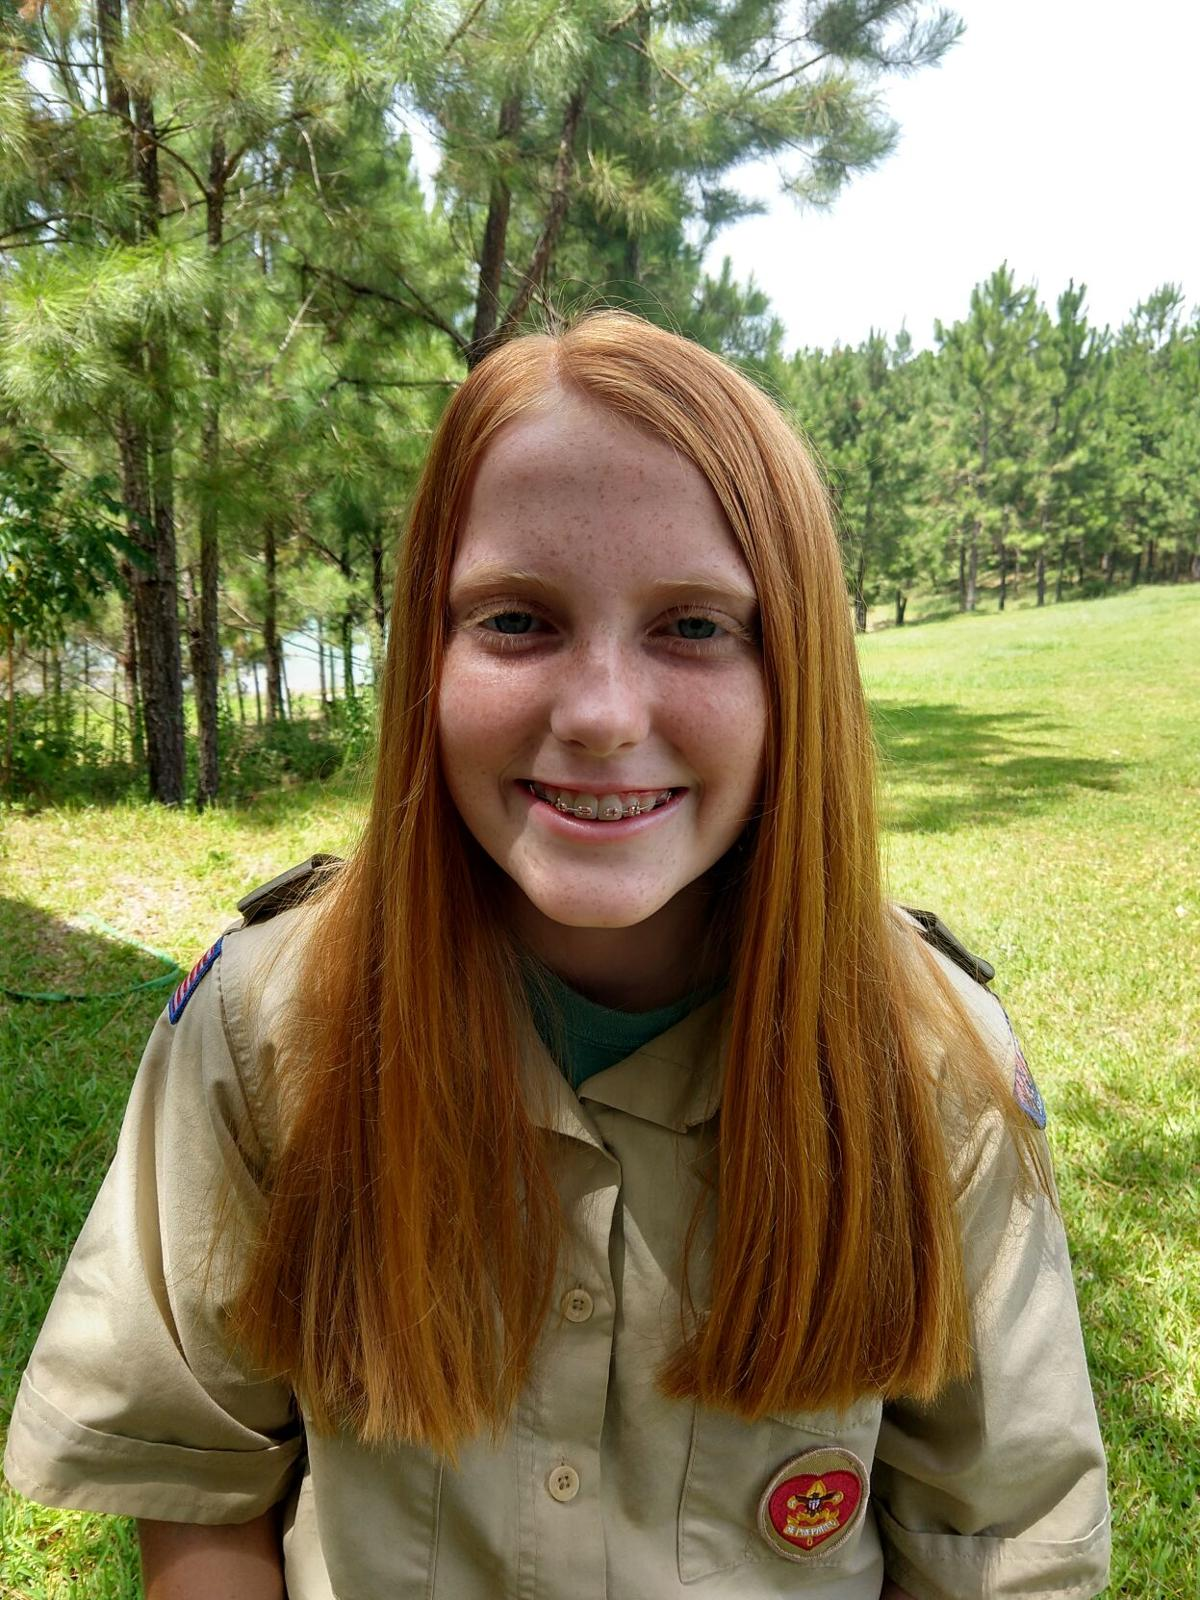 Eagle Scout Emily Staggemeier, Troop 8